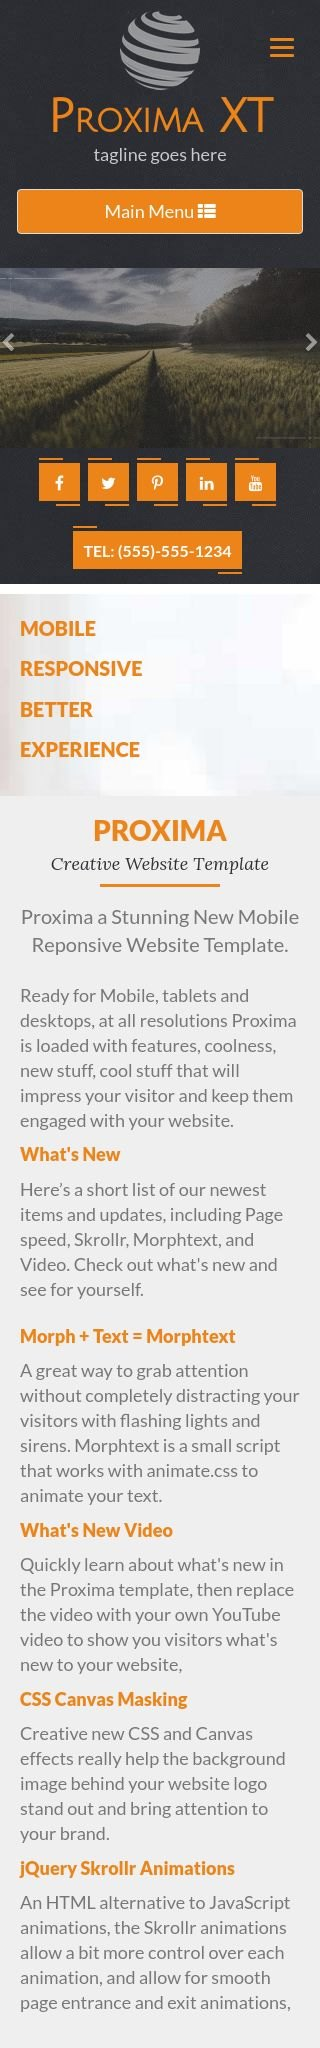 Mobile: Agriculture Web Template